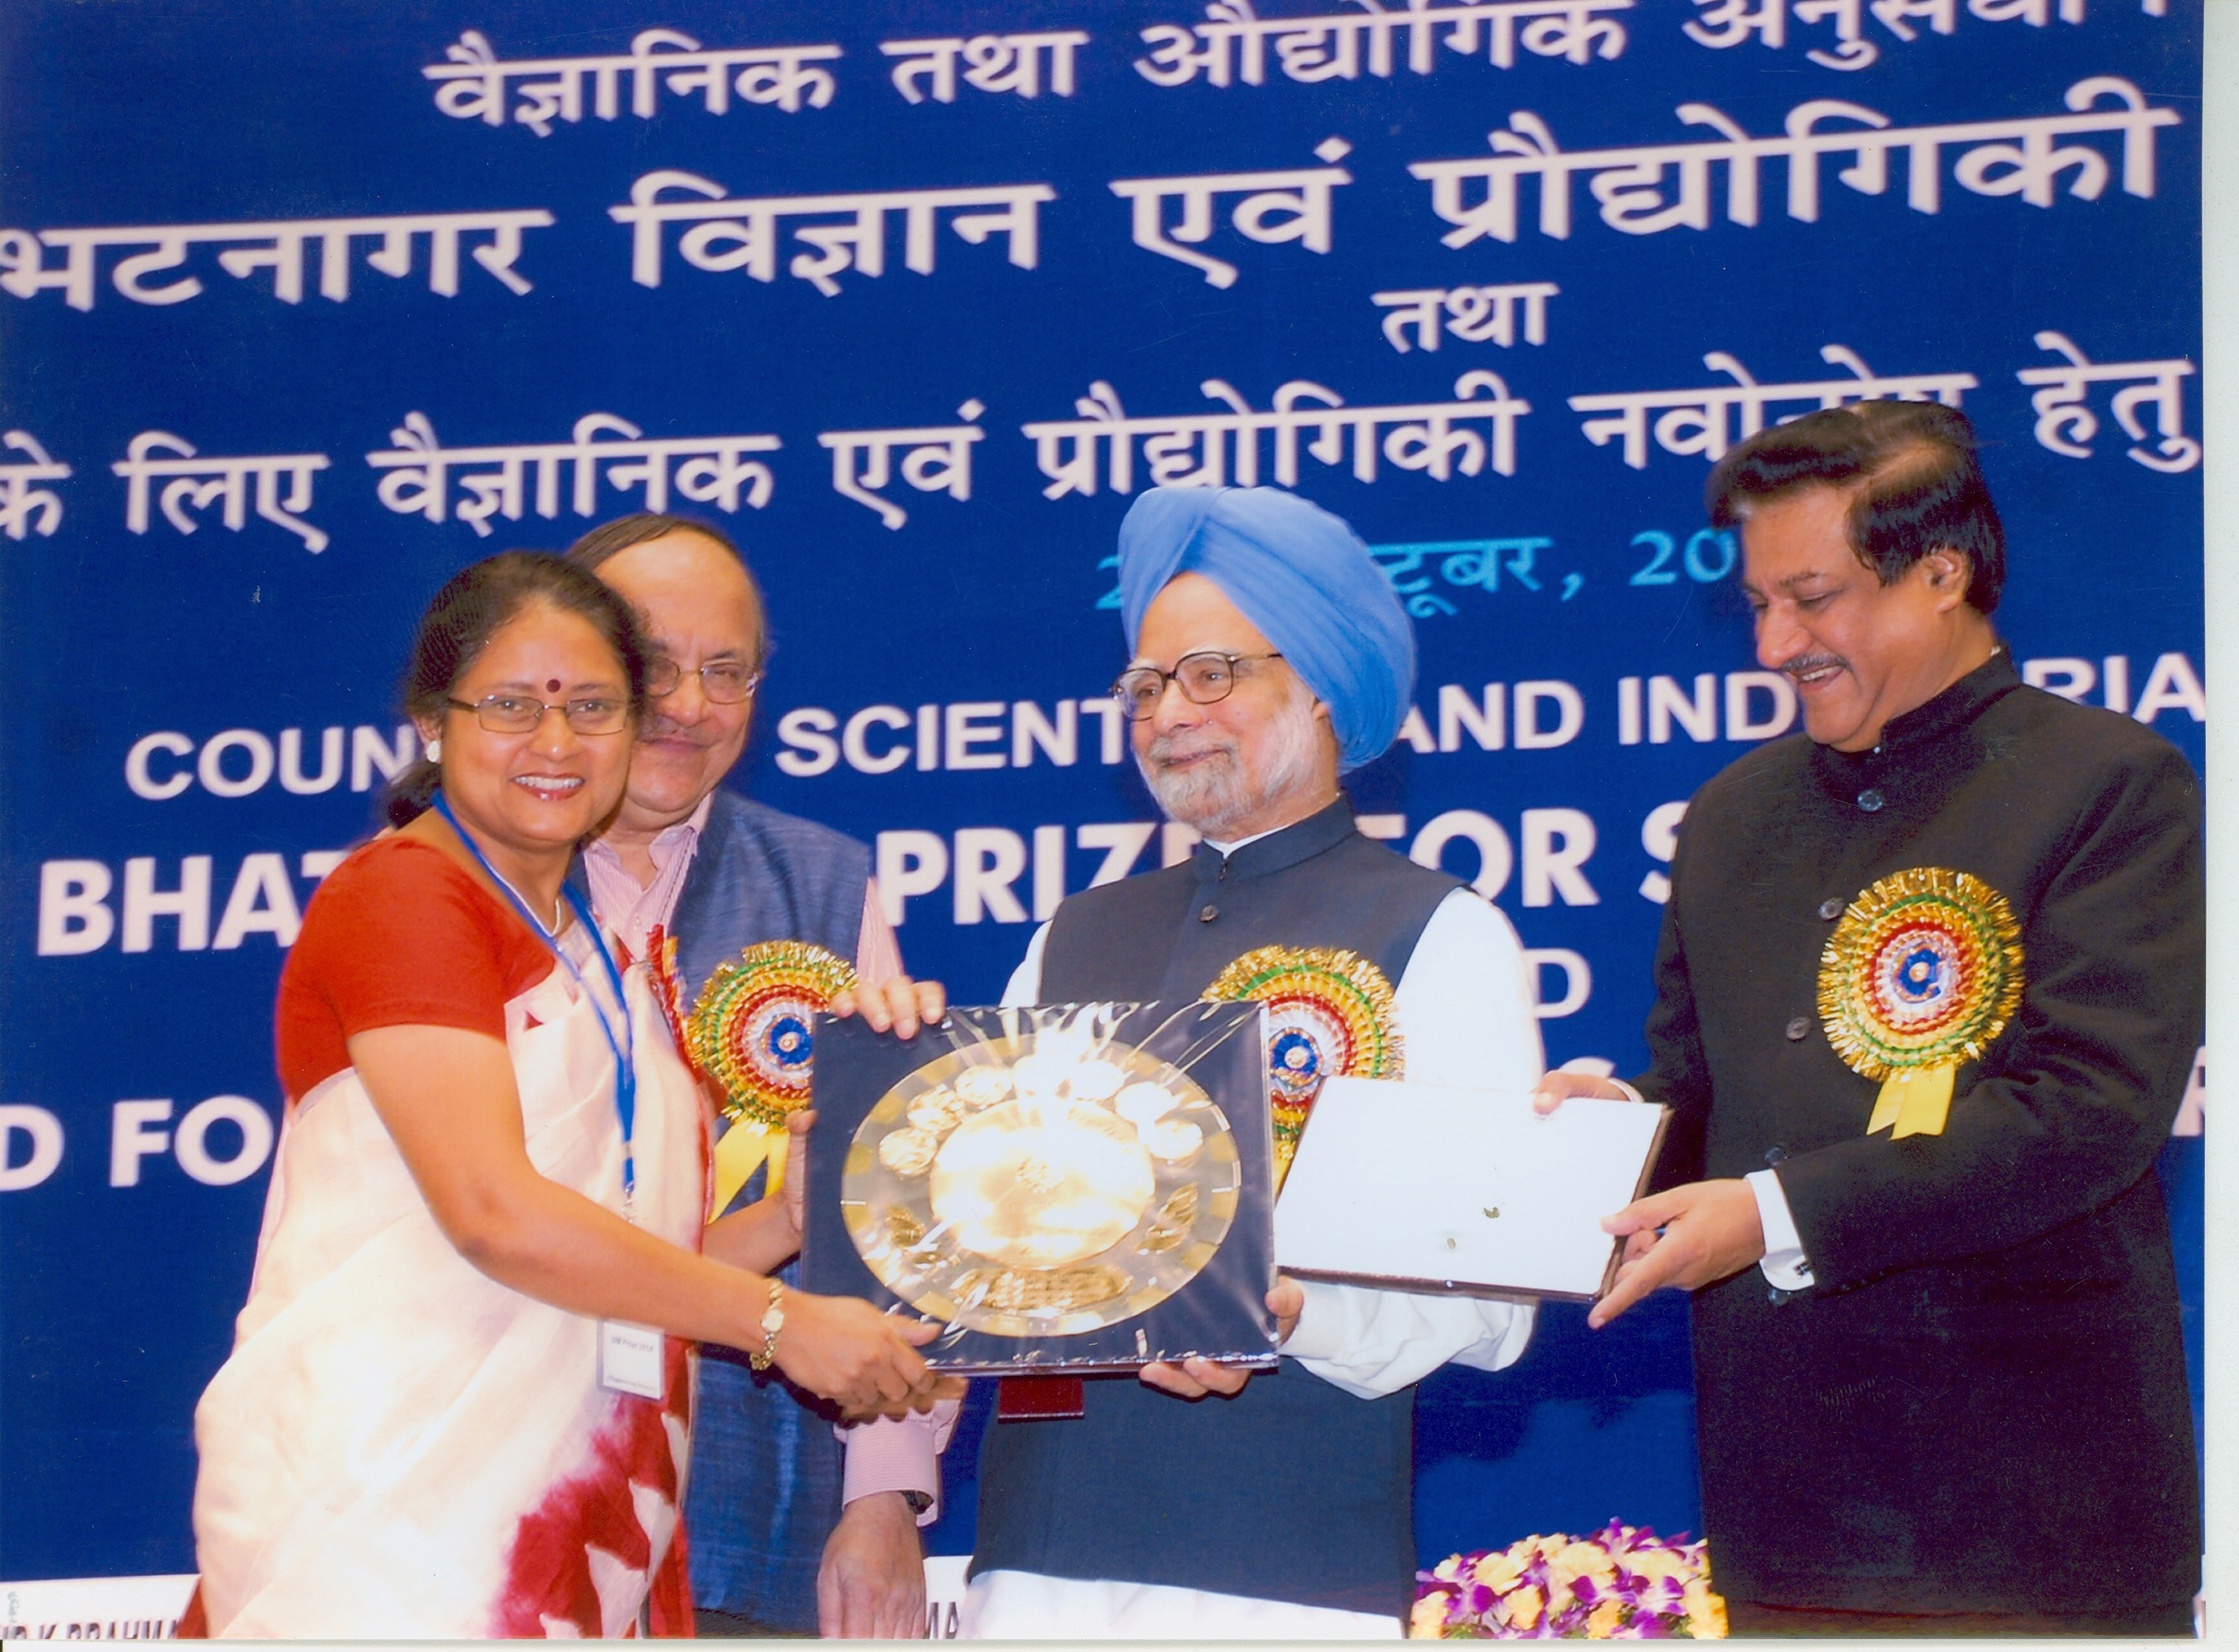 India's Brave New Women Scientists